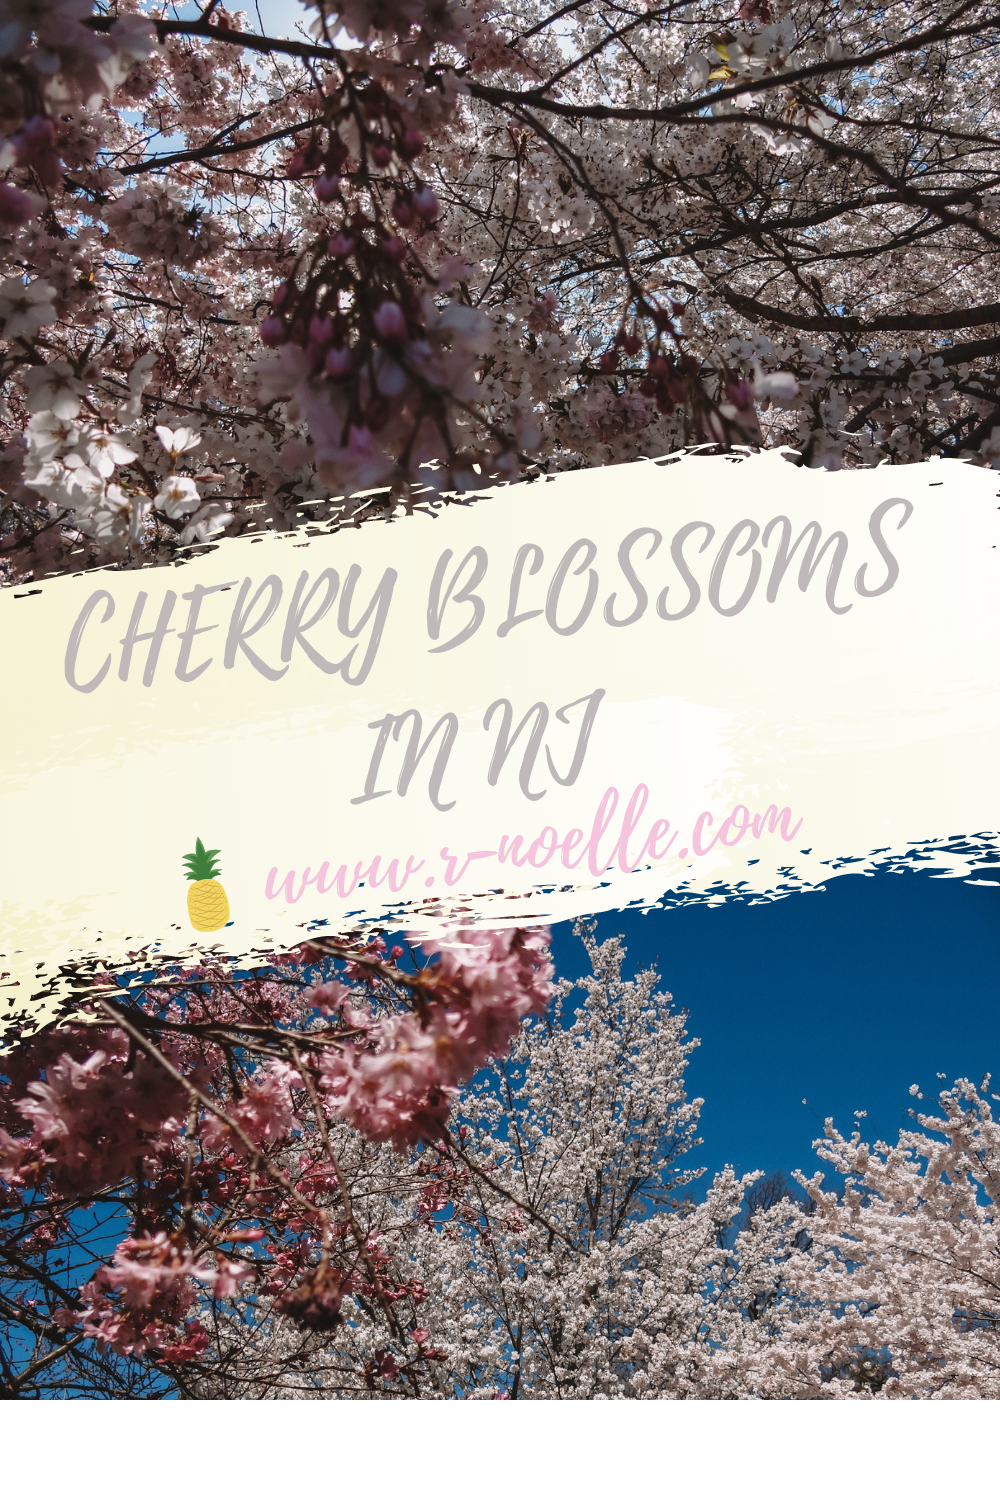 Branch Brook Park is famour for their cherry blossom festivals. Located in in Newark, New Jersey! Whether you drive, take the light rail, or bus to New Jersey it is worth the distance. There are more to see than cherry blossoms in DC!